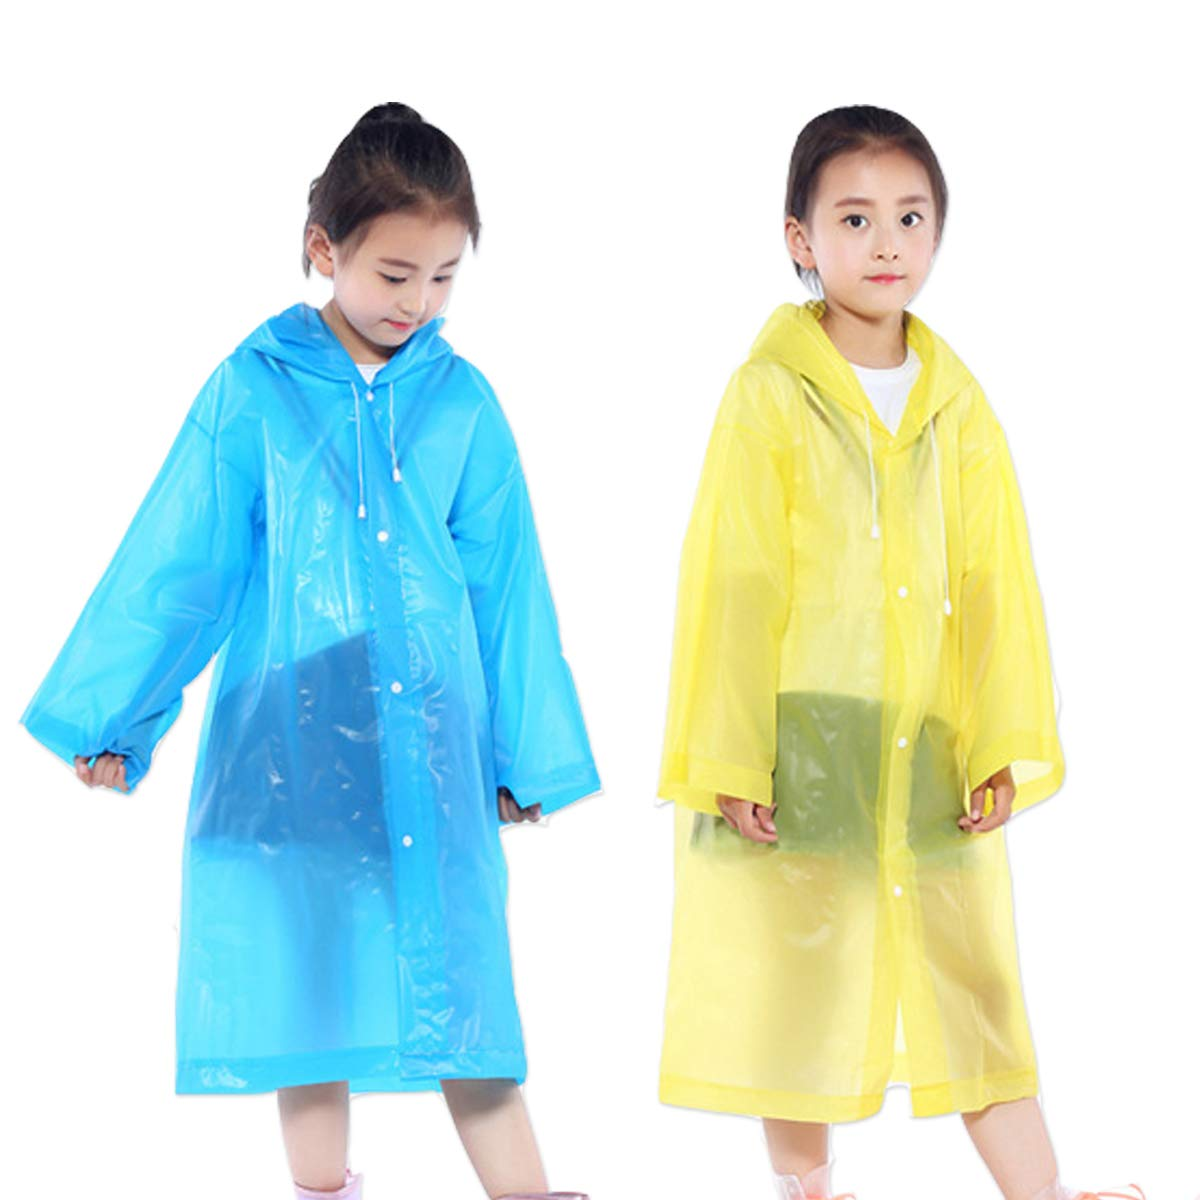 AzBoys Children Rain Ponchos 2Pack,Blue & Yellow,Waterproof Rain Poncho for Kids,Portable Reusable Raincoat for Boys and Girls Ages 6-12,for School,Camping,Emergency